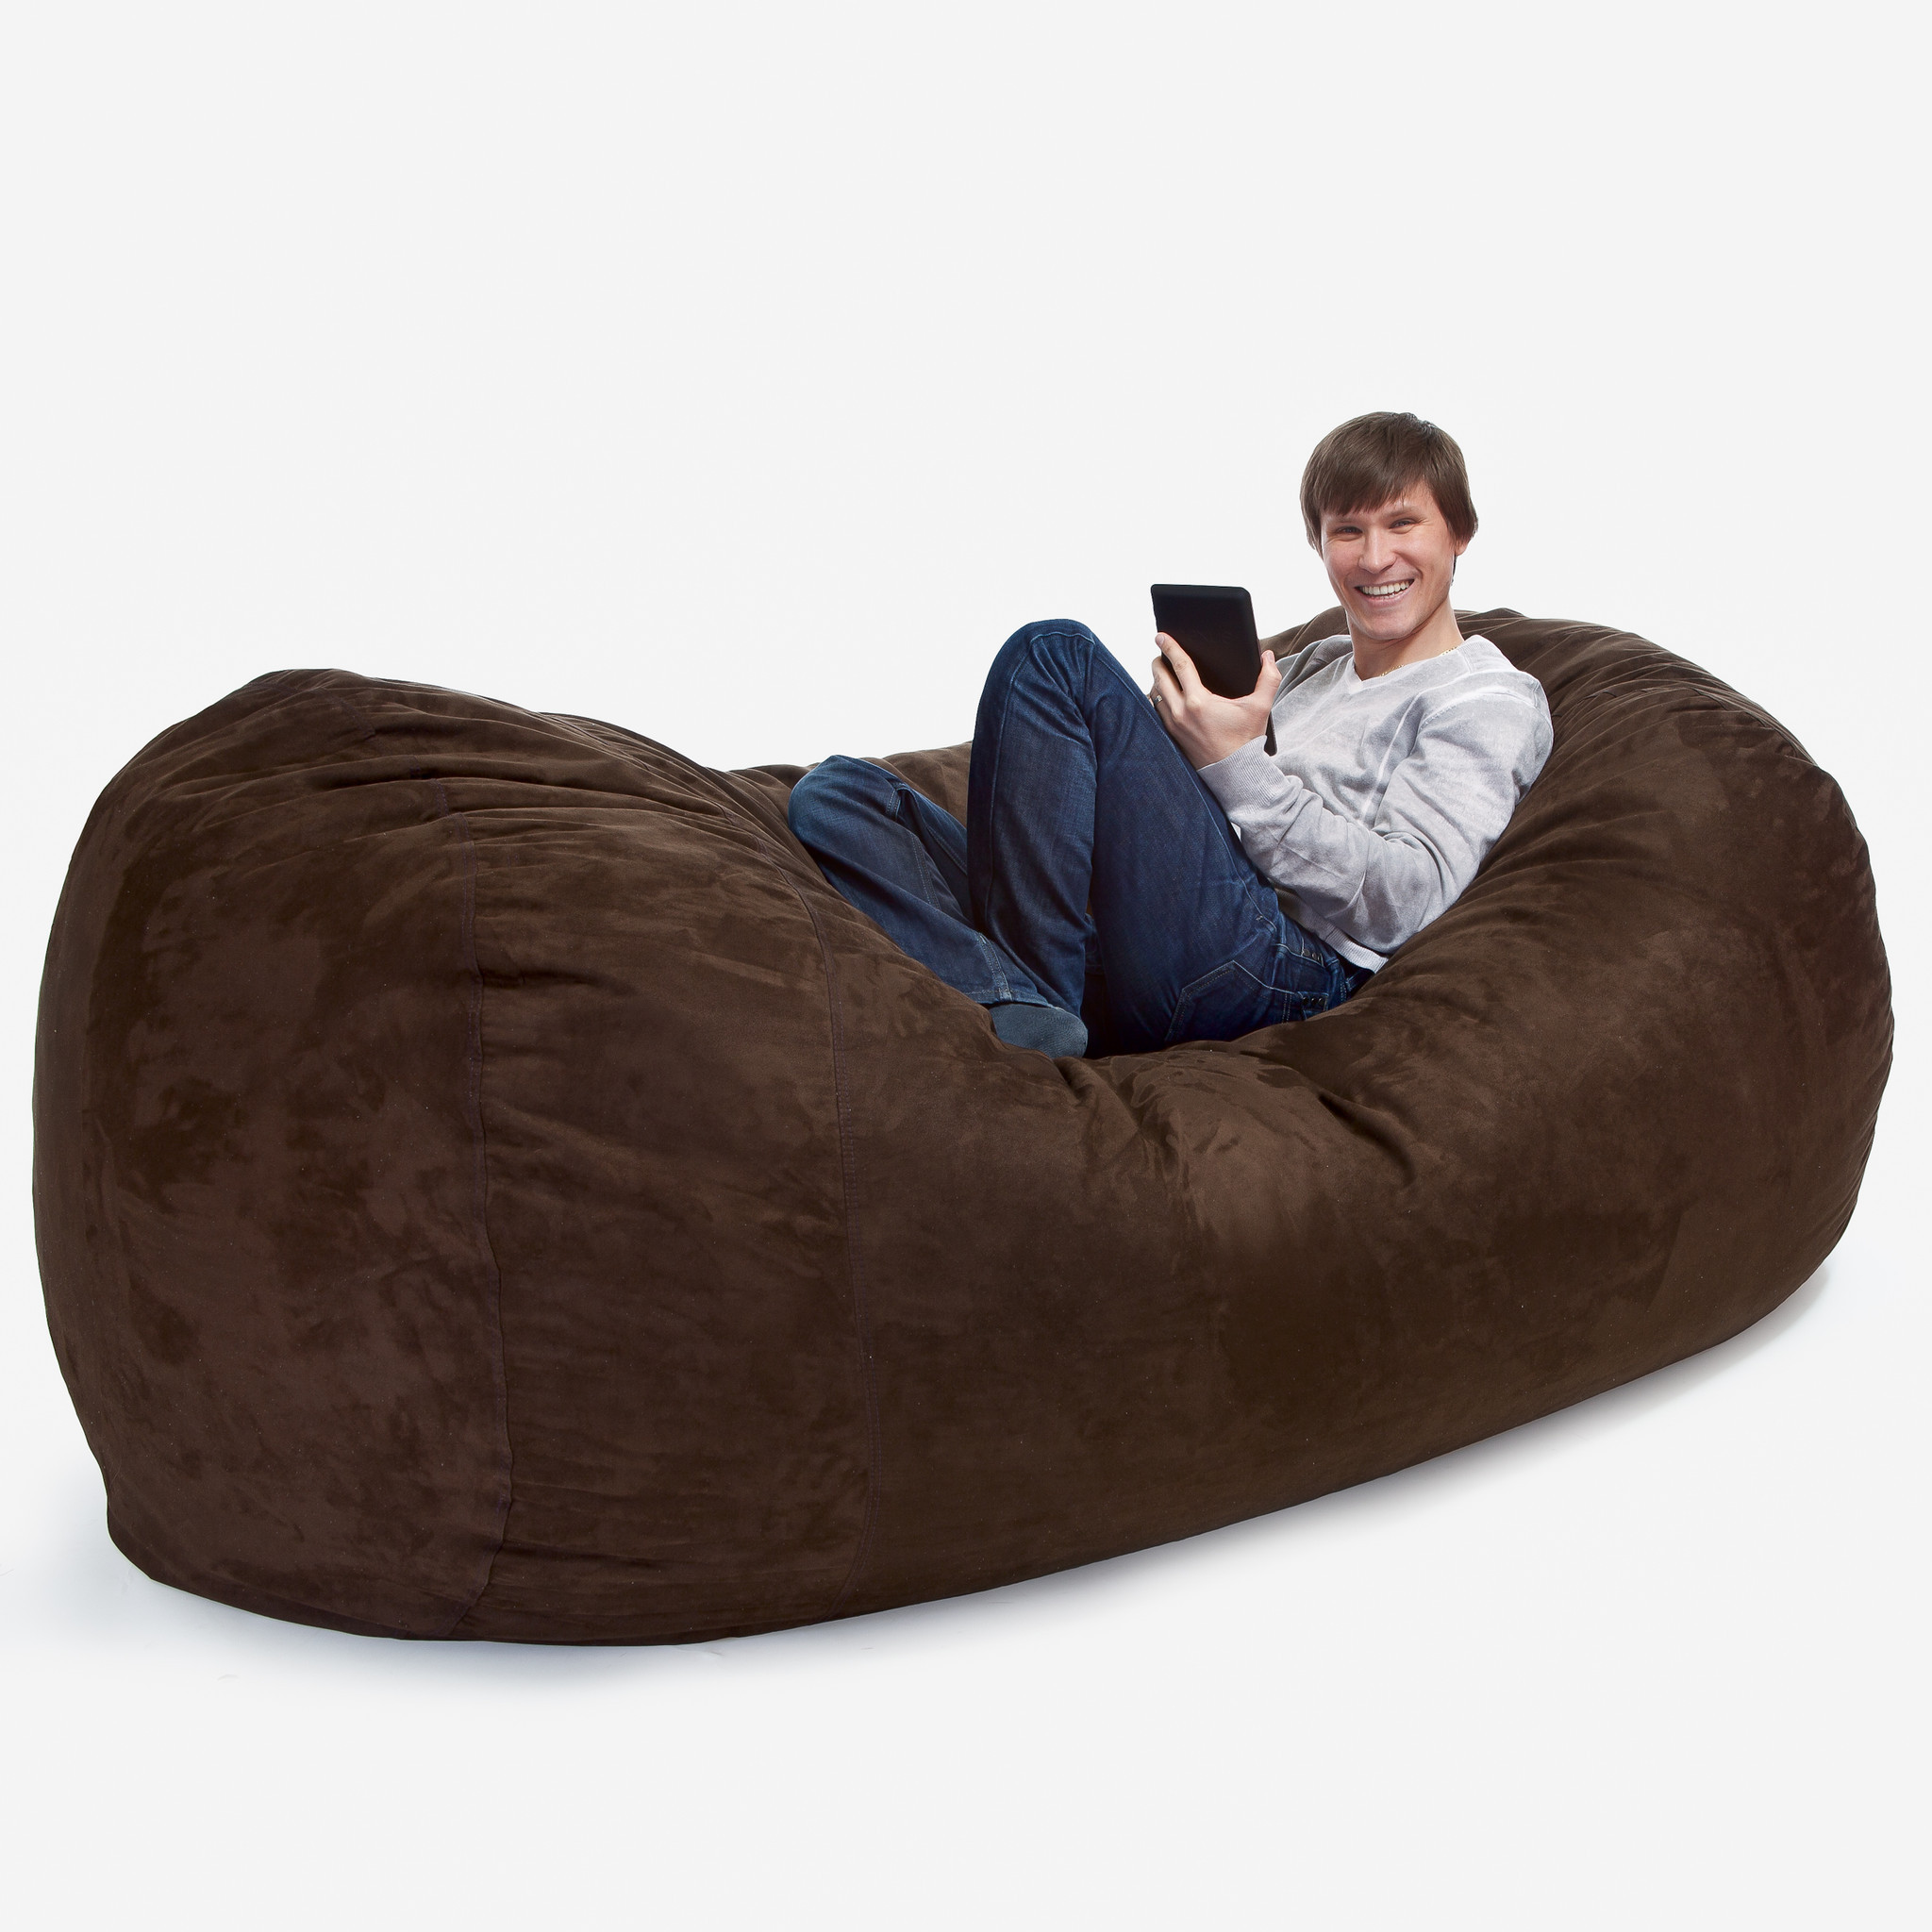 bean bag chairs staples gaming chair review 7 classy adult bags room and bath